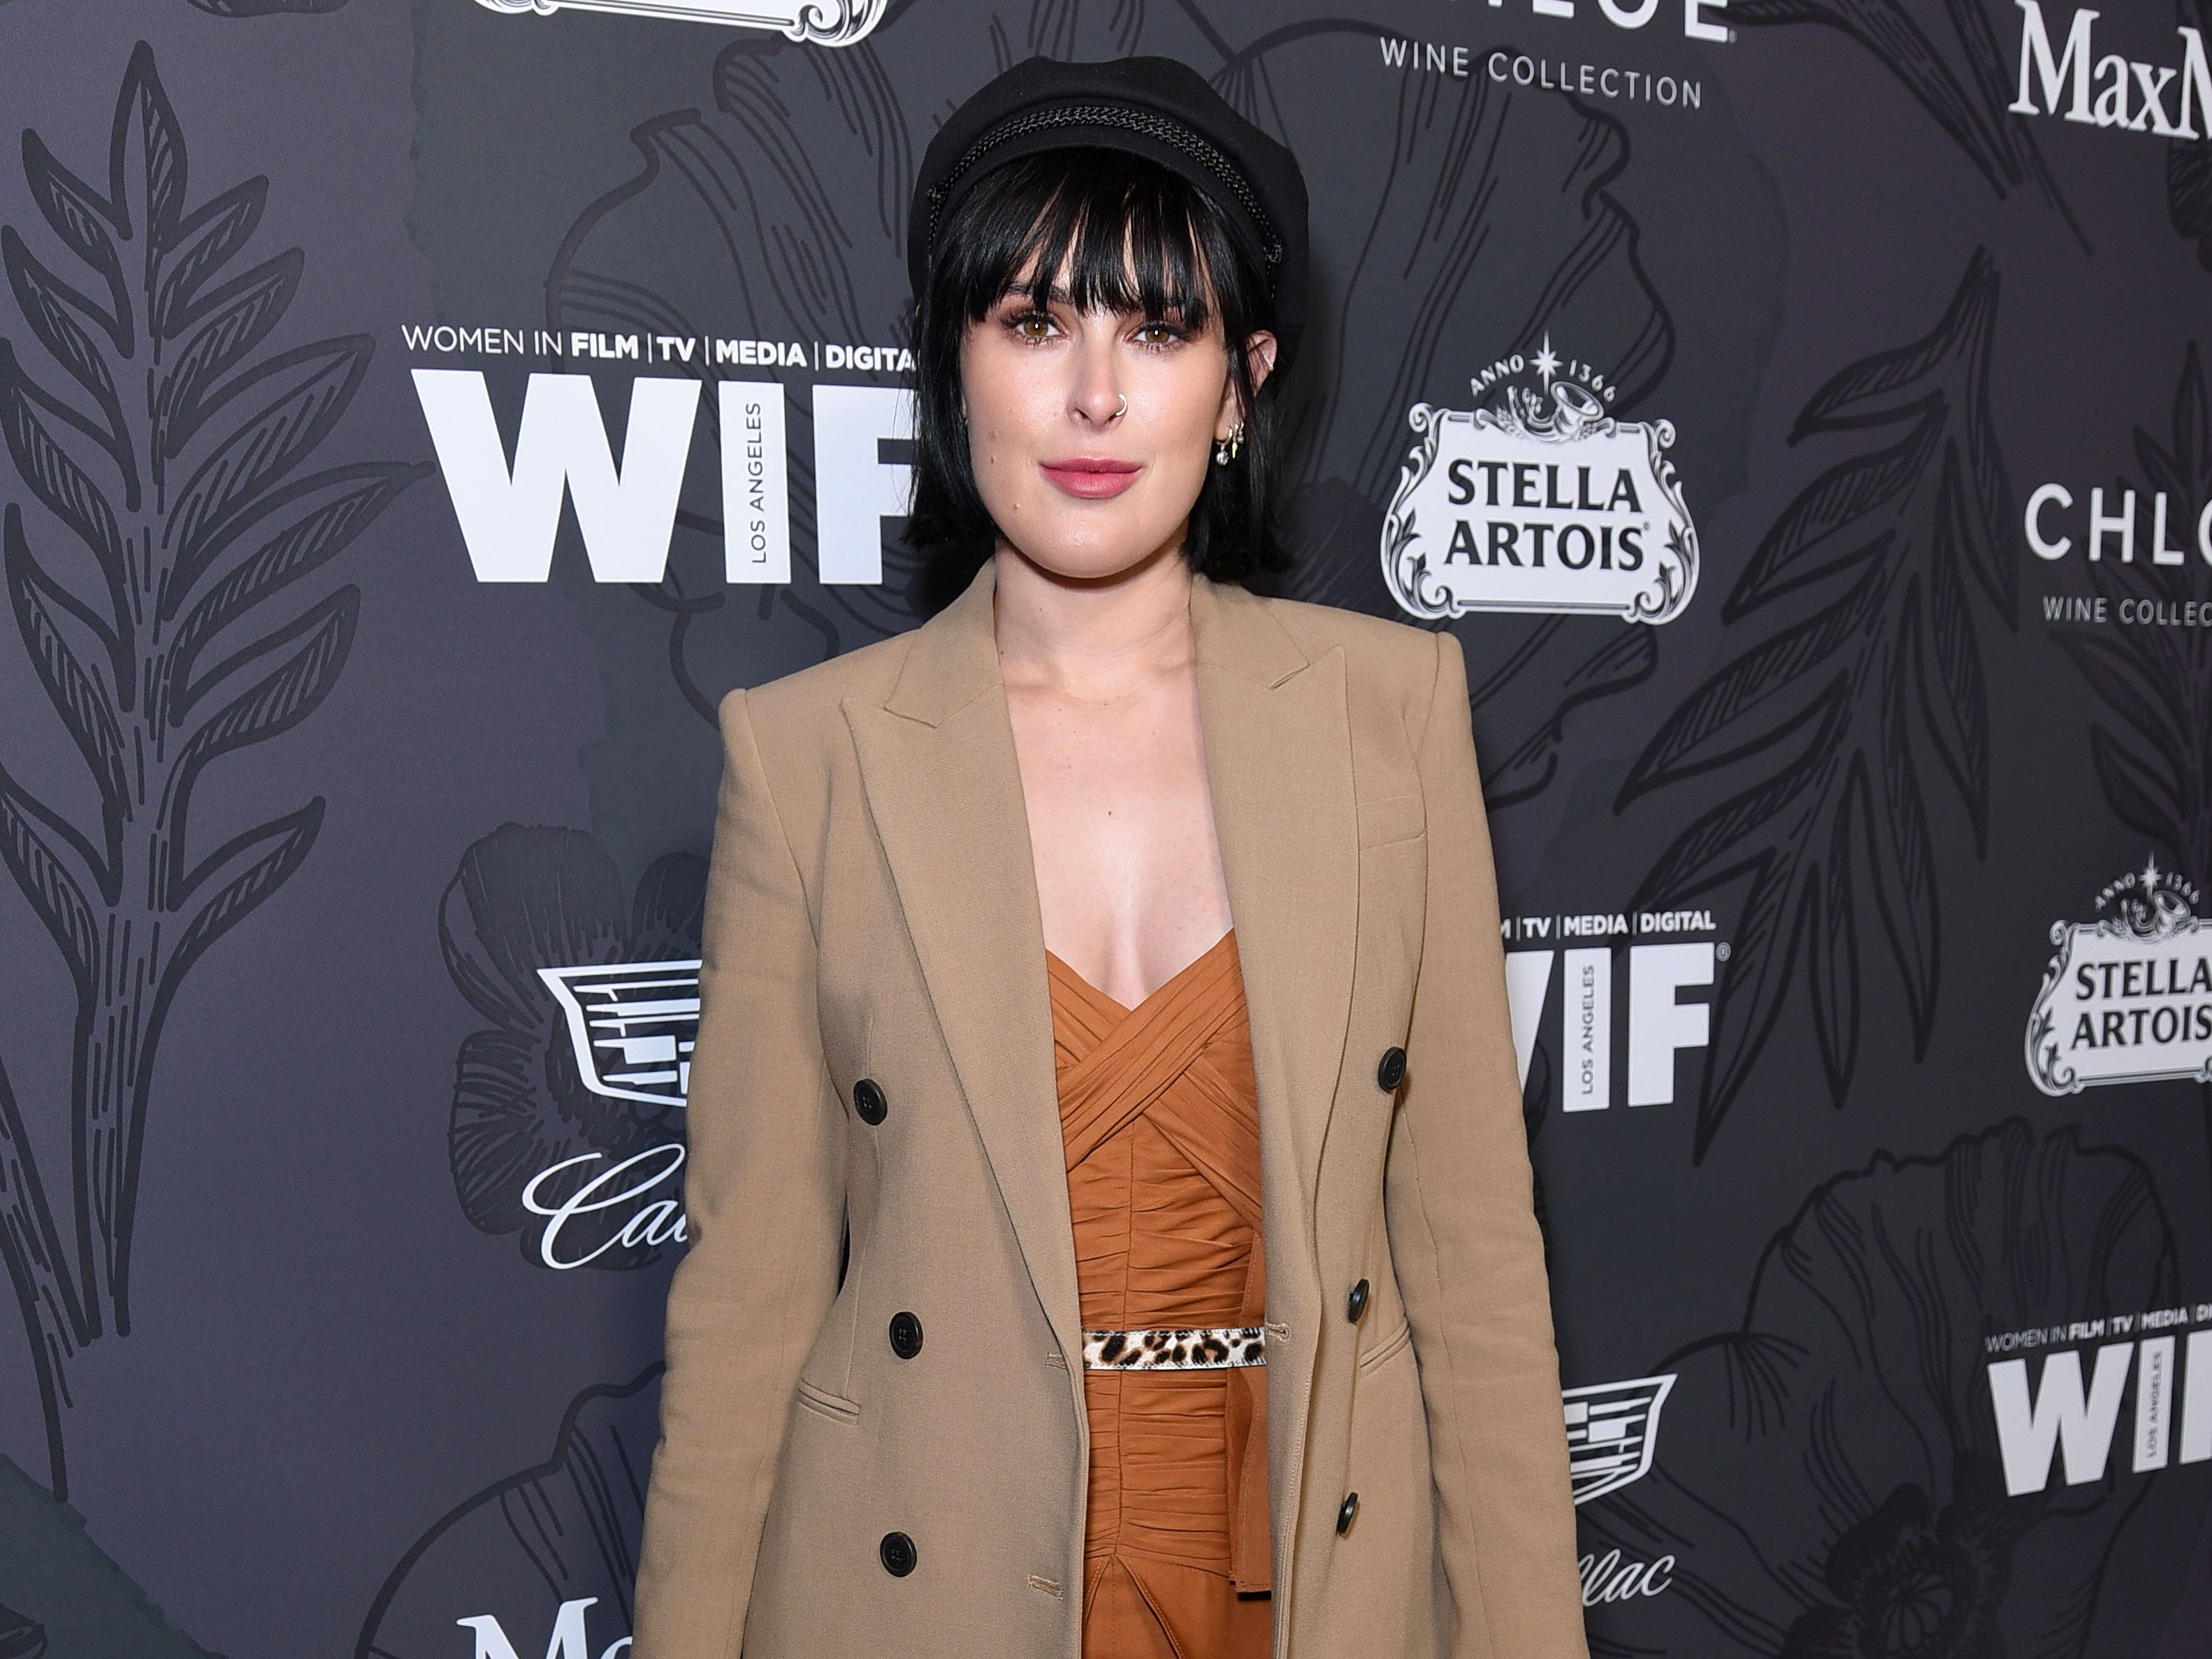 BEVERLY HILLS, CALIFORNIA - FEBRUARY 22: Rumer Willis attends the 12th Annual Women in Film Oscar Nominees Party Presented by Max Mara with additional support from Chloe Wine Collection, Stella Artois and Cadillac at Spring Place on February 22, 2019 in Los Angeles, California. (Photo by Presley Ann/Getty Images for Women In Film) ORG XMIT: 775291745 ORIG FILE ID: 1131514078